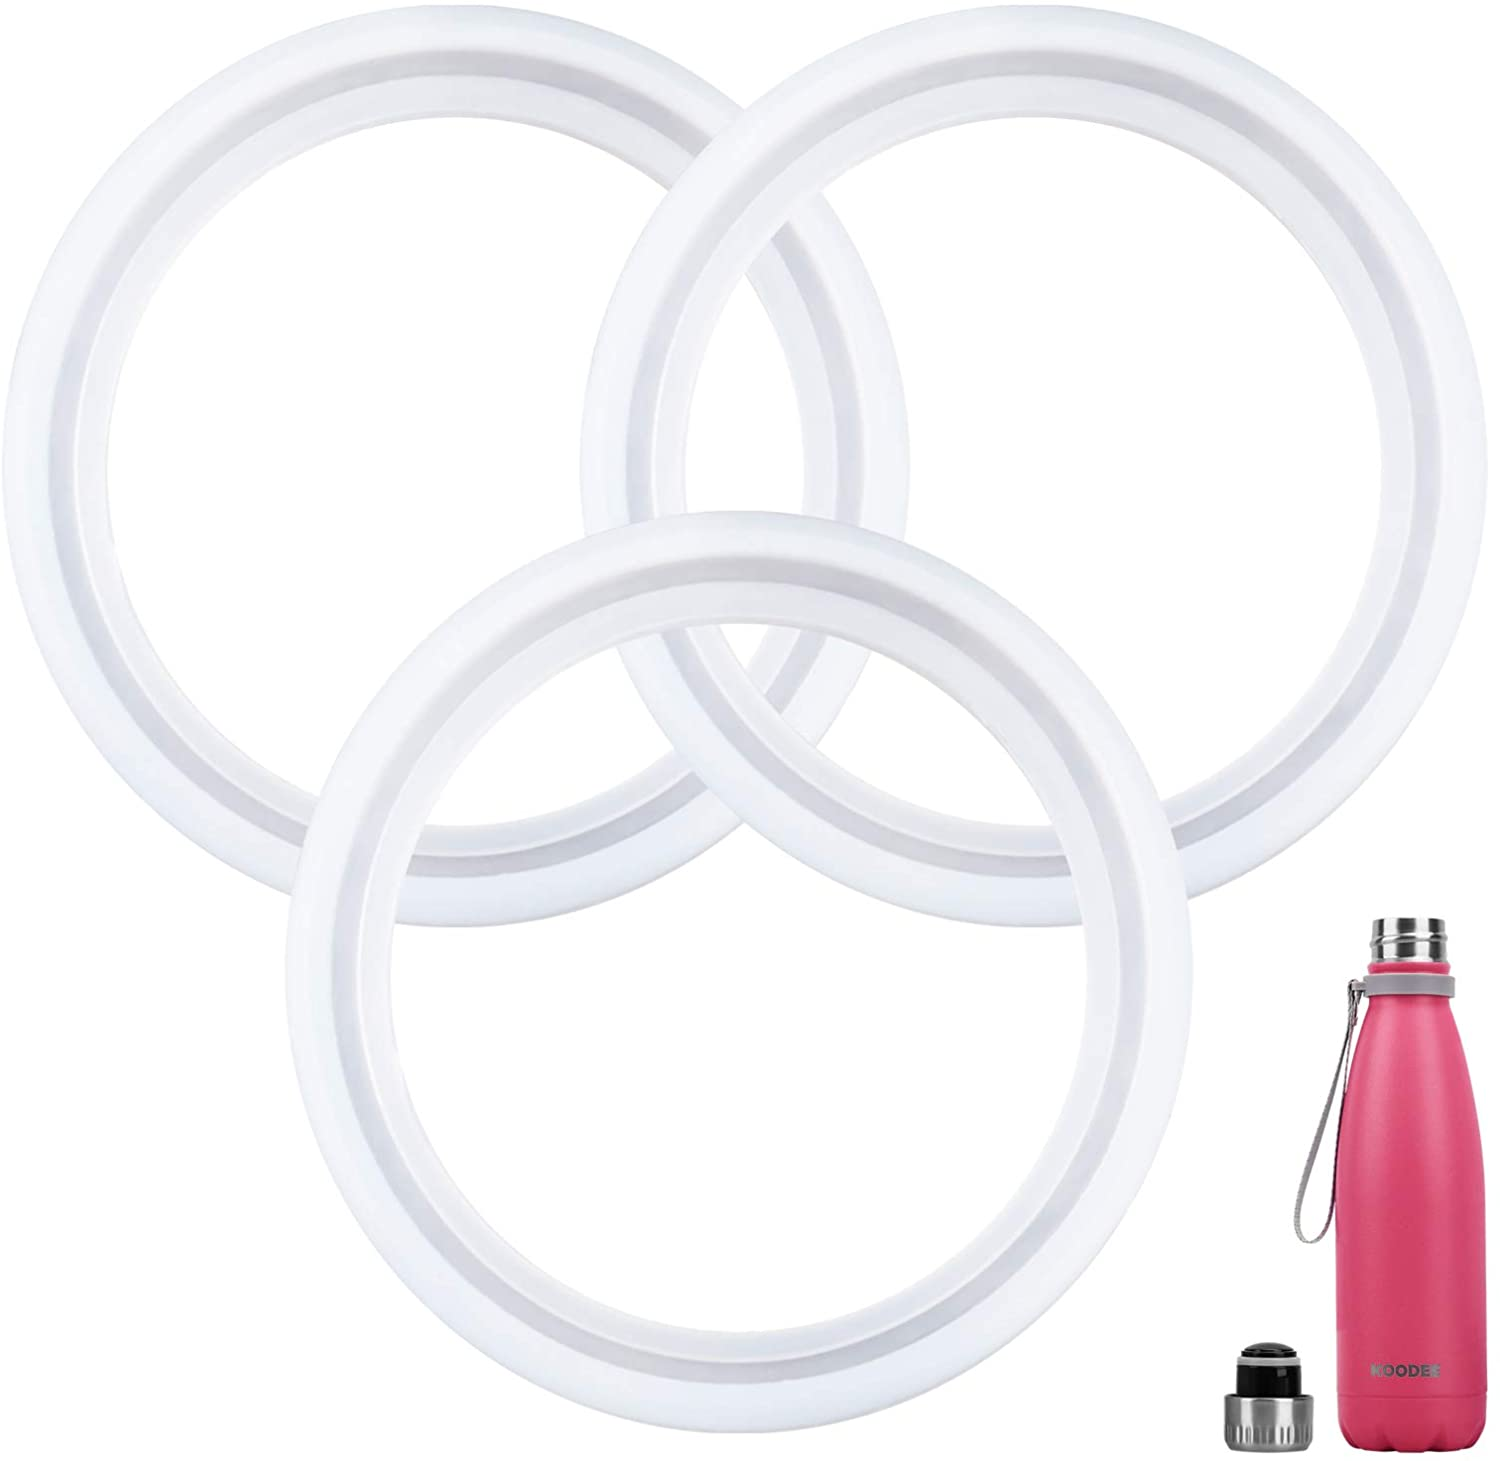 koodee 3 Pack Replacement Silicone Sealing Rings Gaskets for 17 oz Vacuum Insulated Water Bottle, BPA-Free